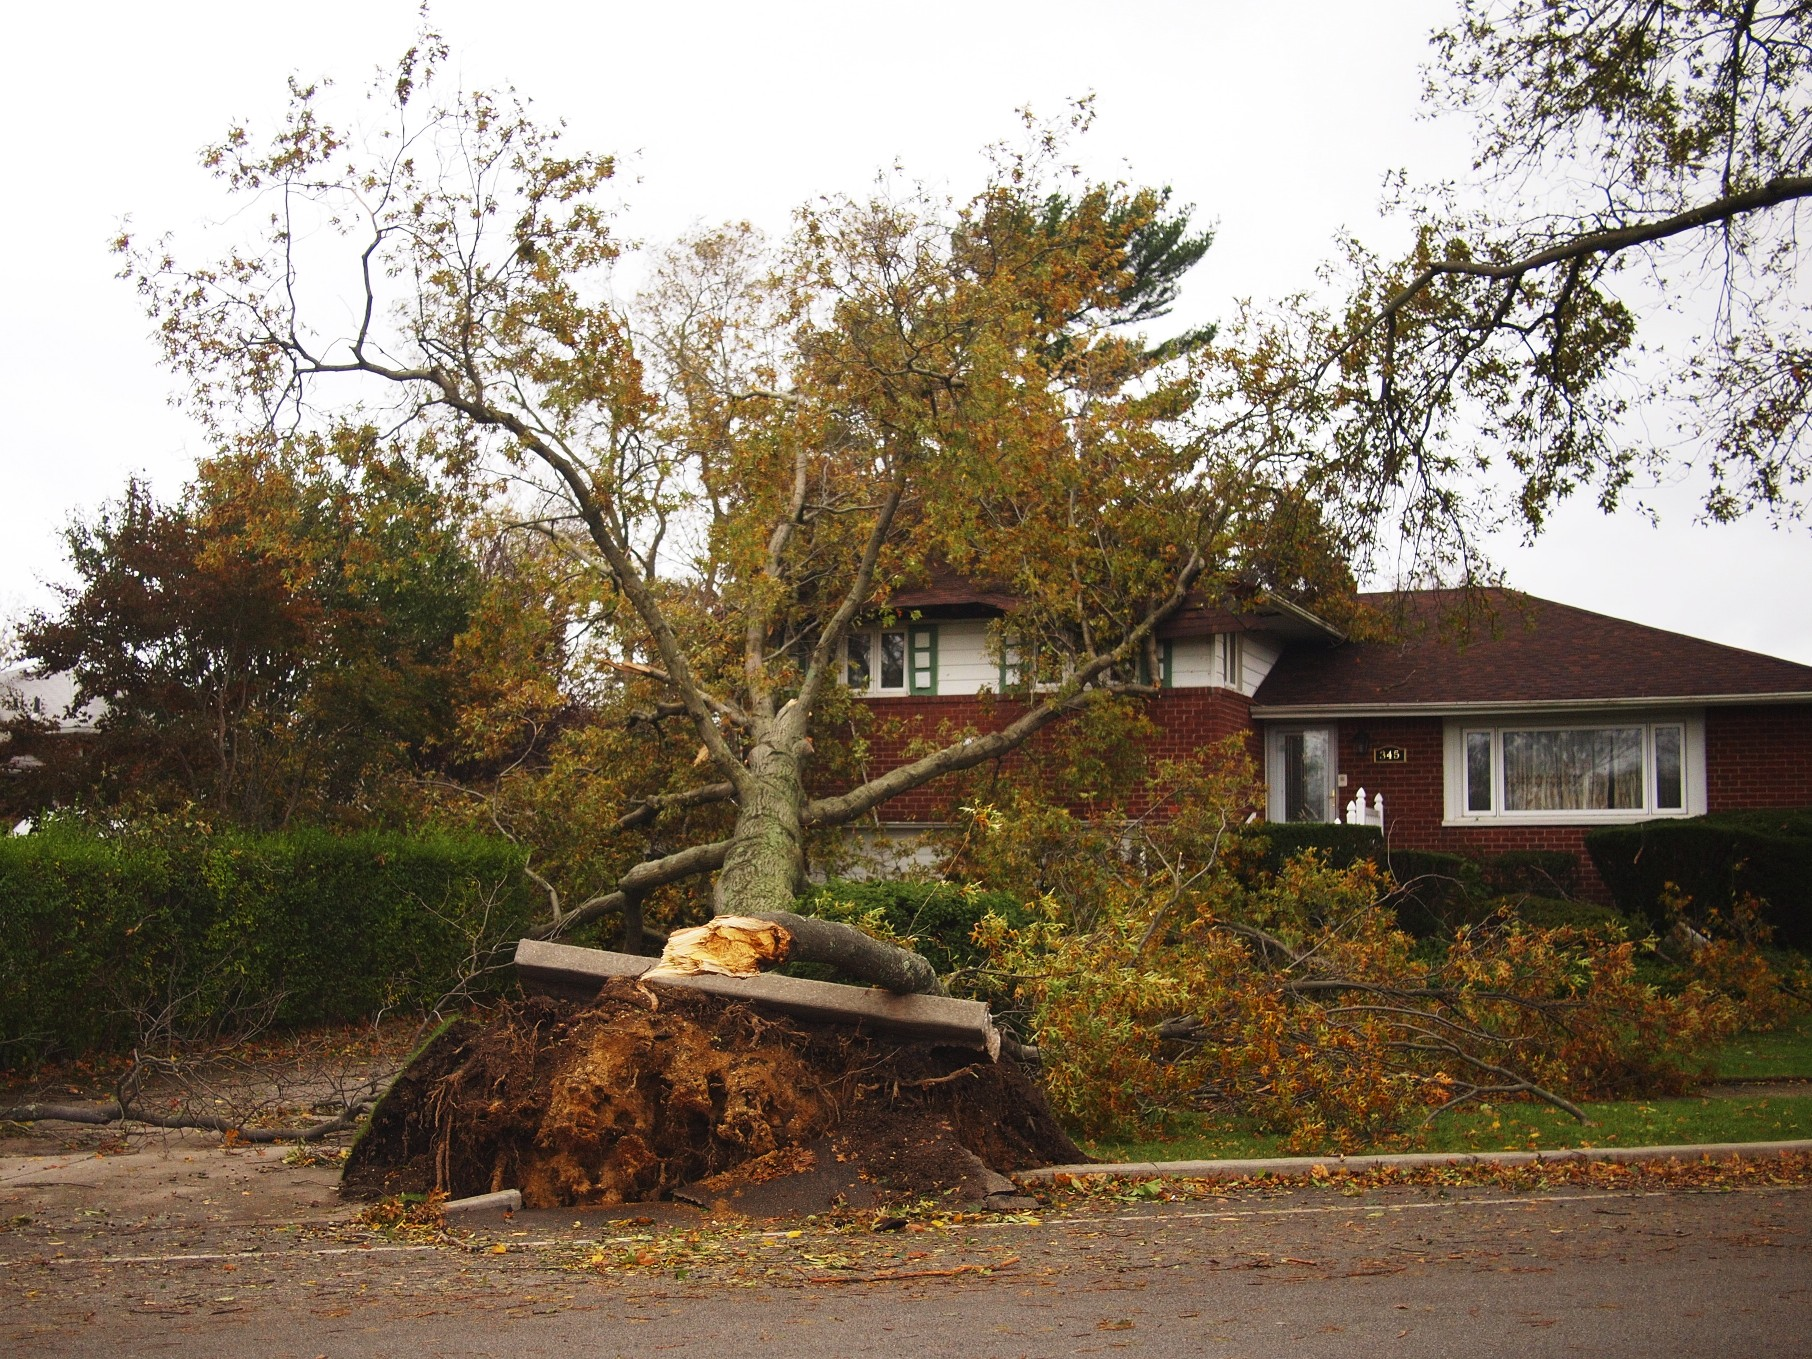 Lots of houses with damage near us.